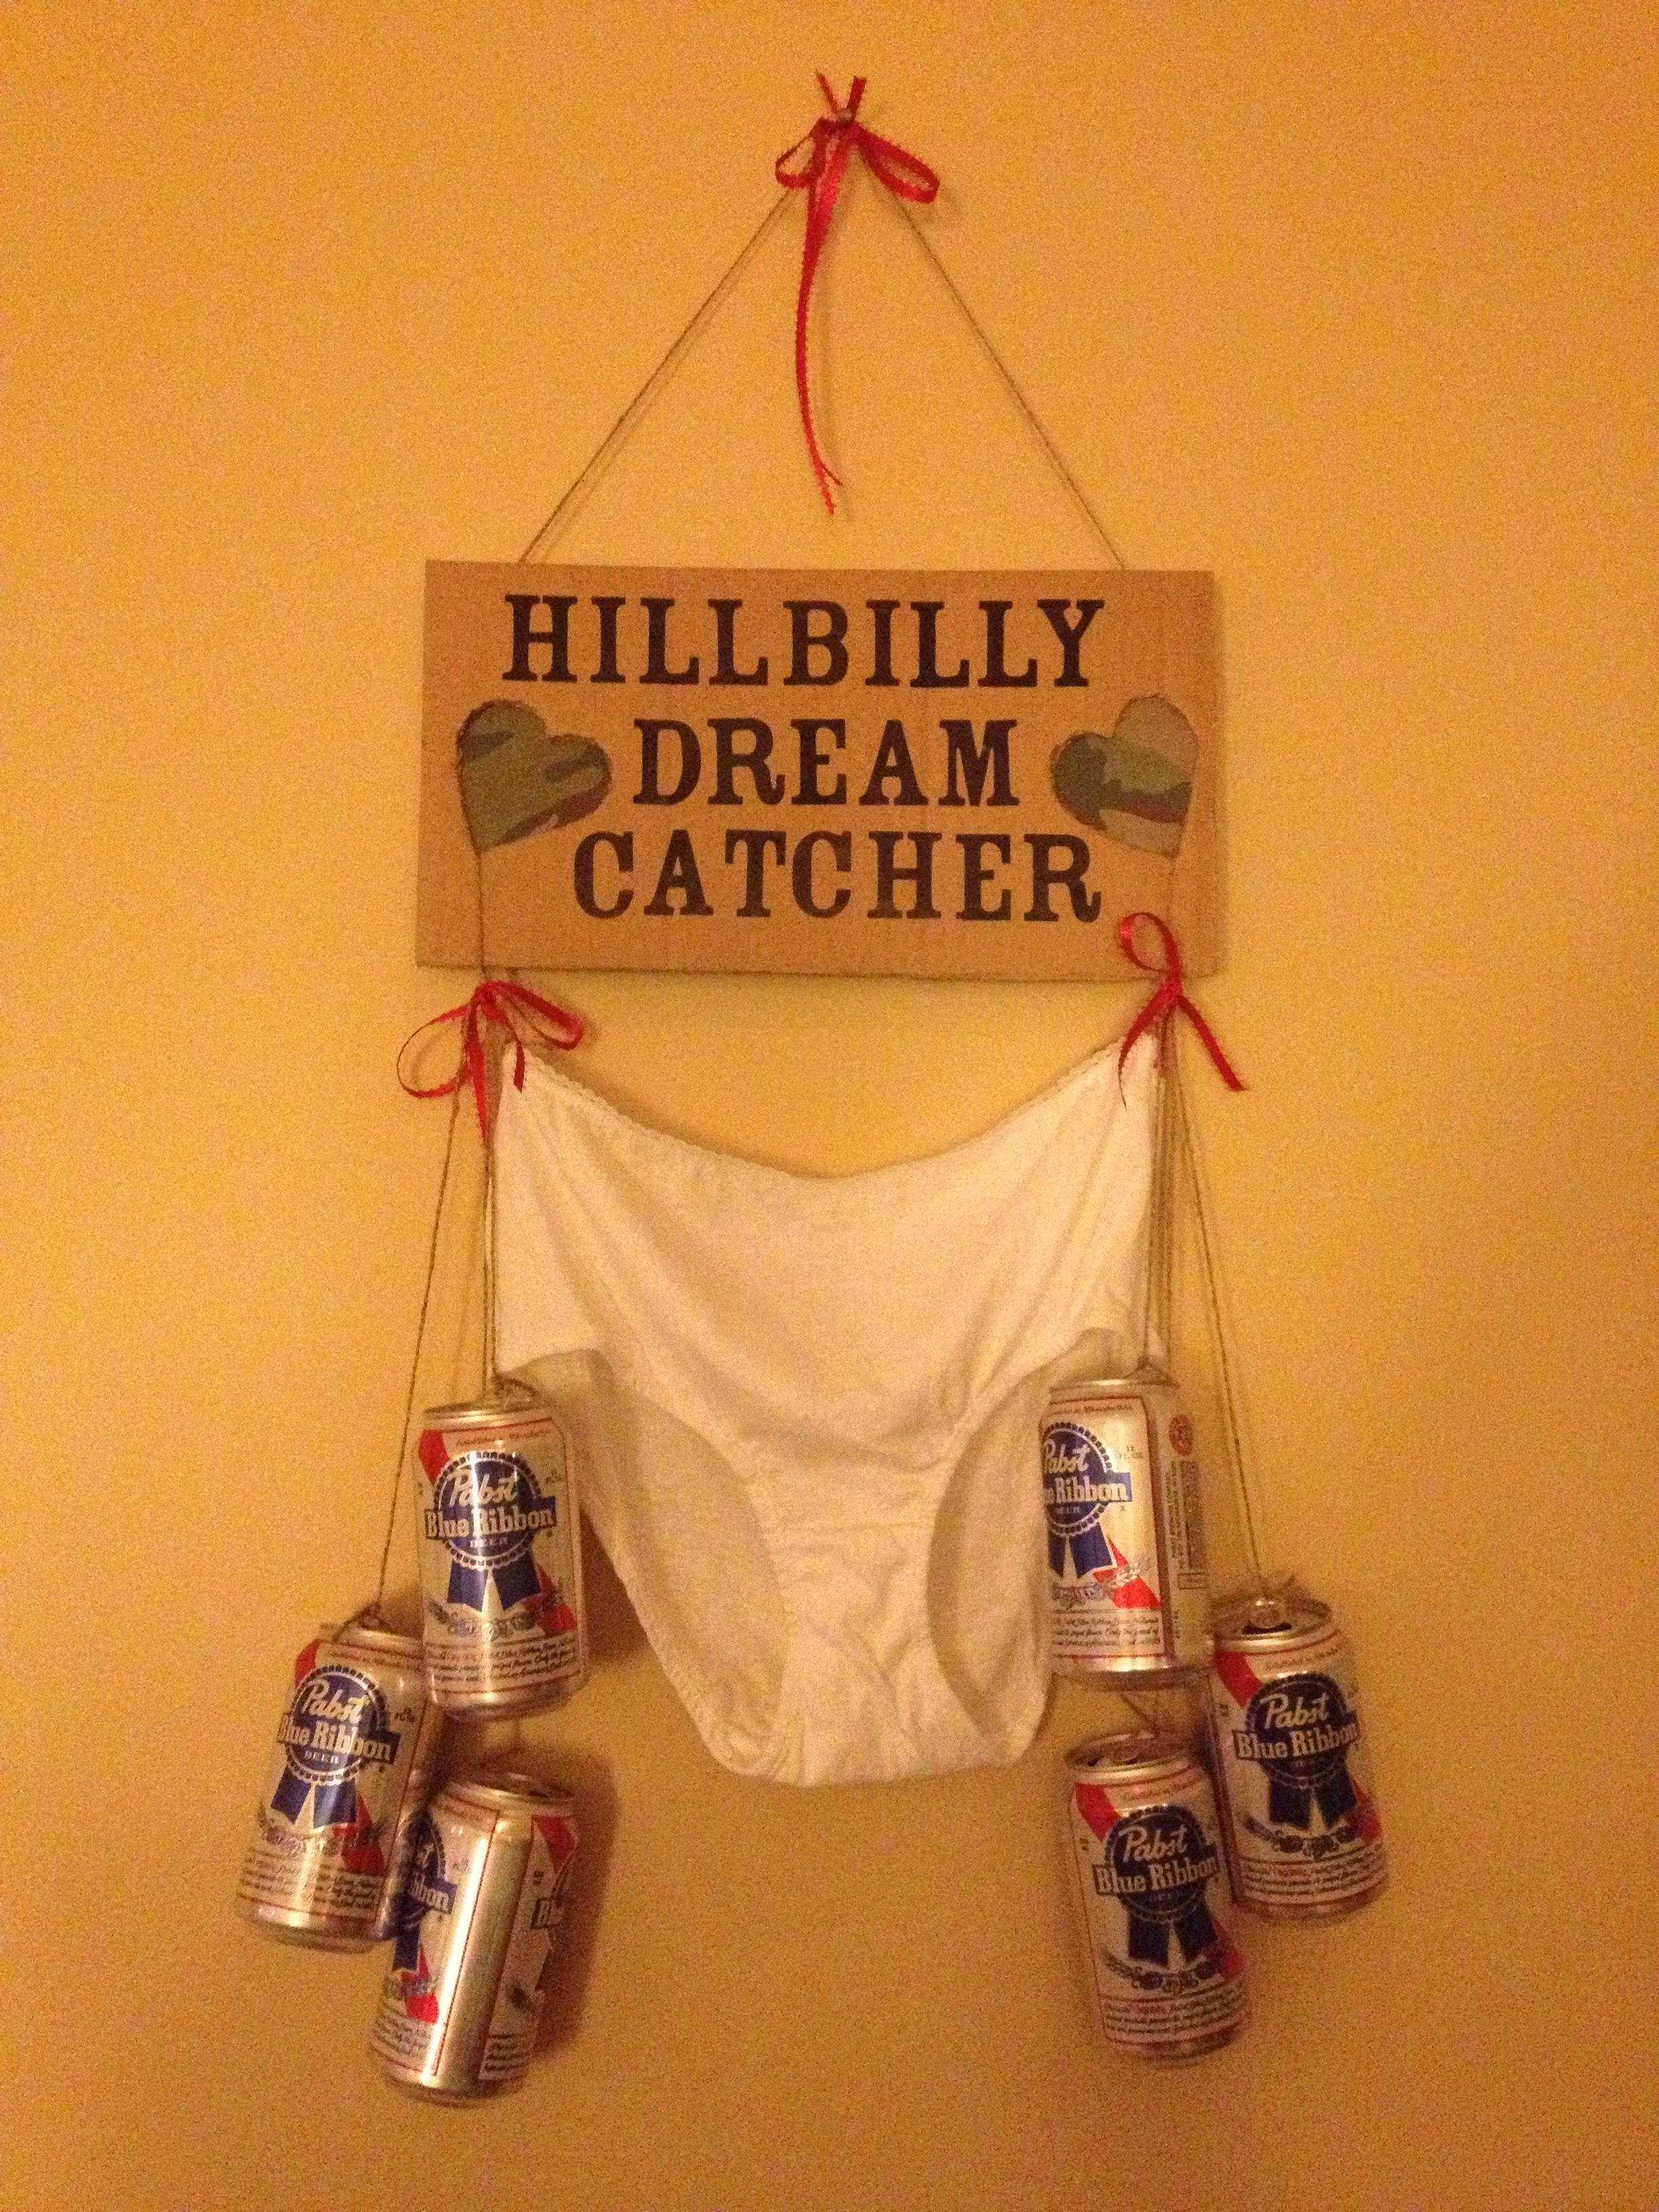 Hillbilly dream catcher pretty easy to diy made this as a gag hillbilly dream catcher pretty easy to diy made this as a gag gift for a redneck themed bachelorette party solutioingenieria